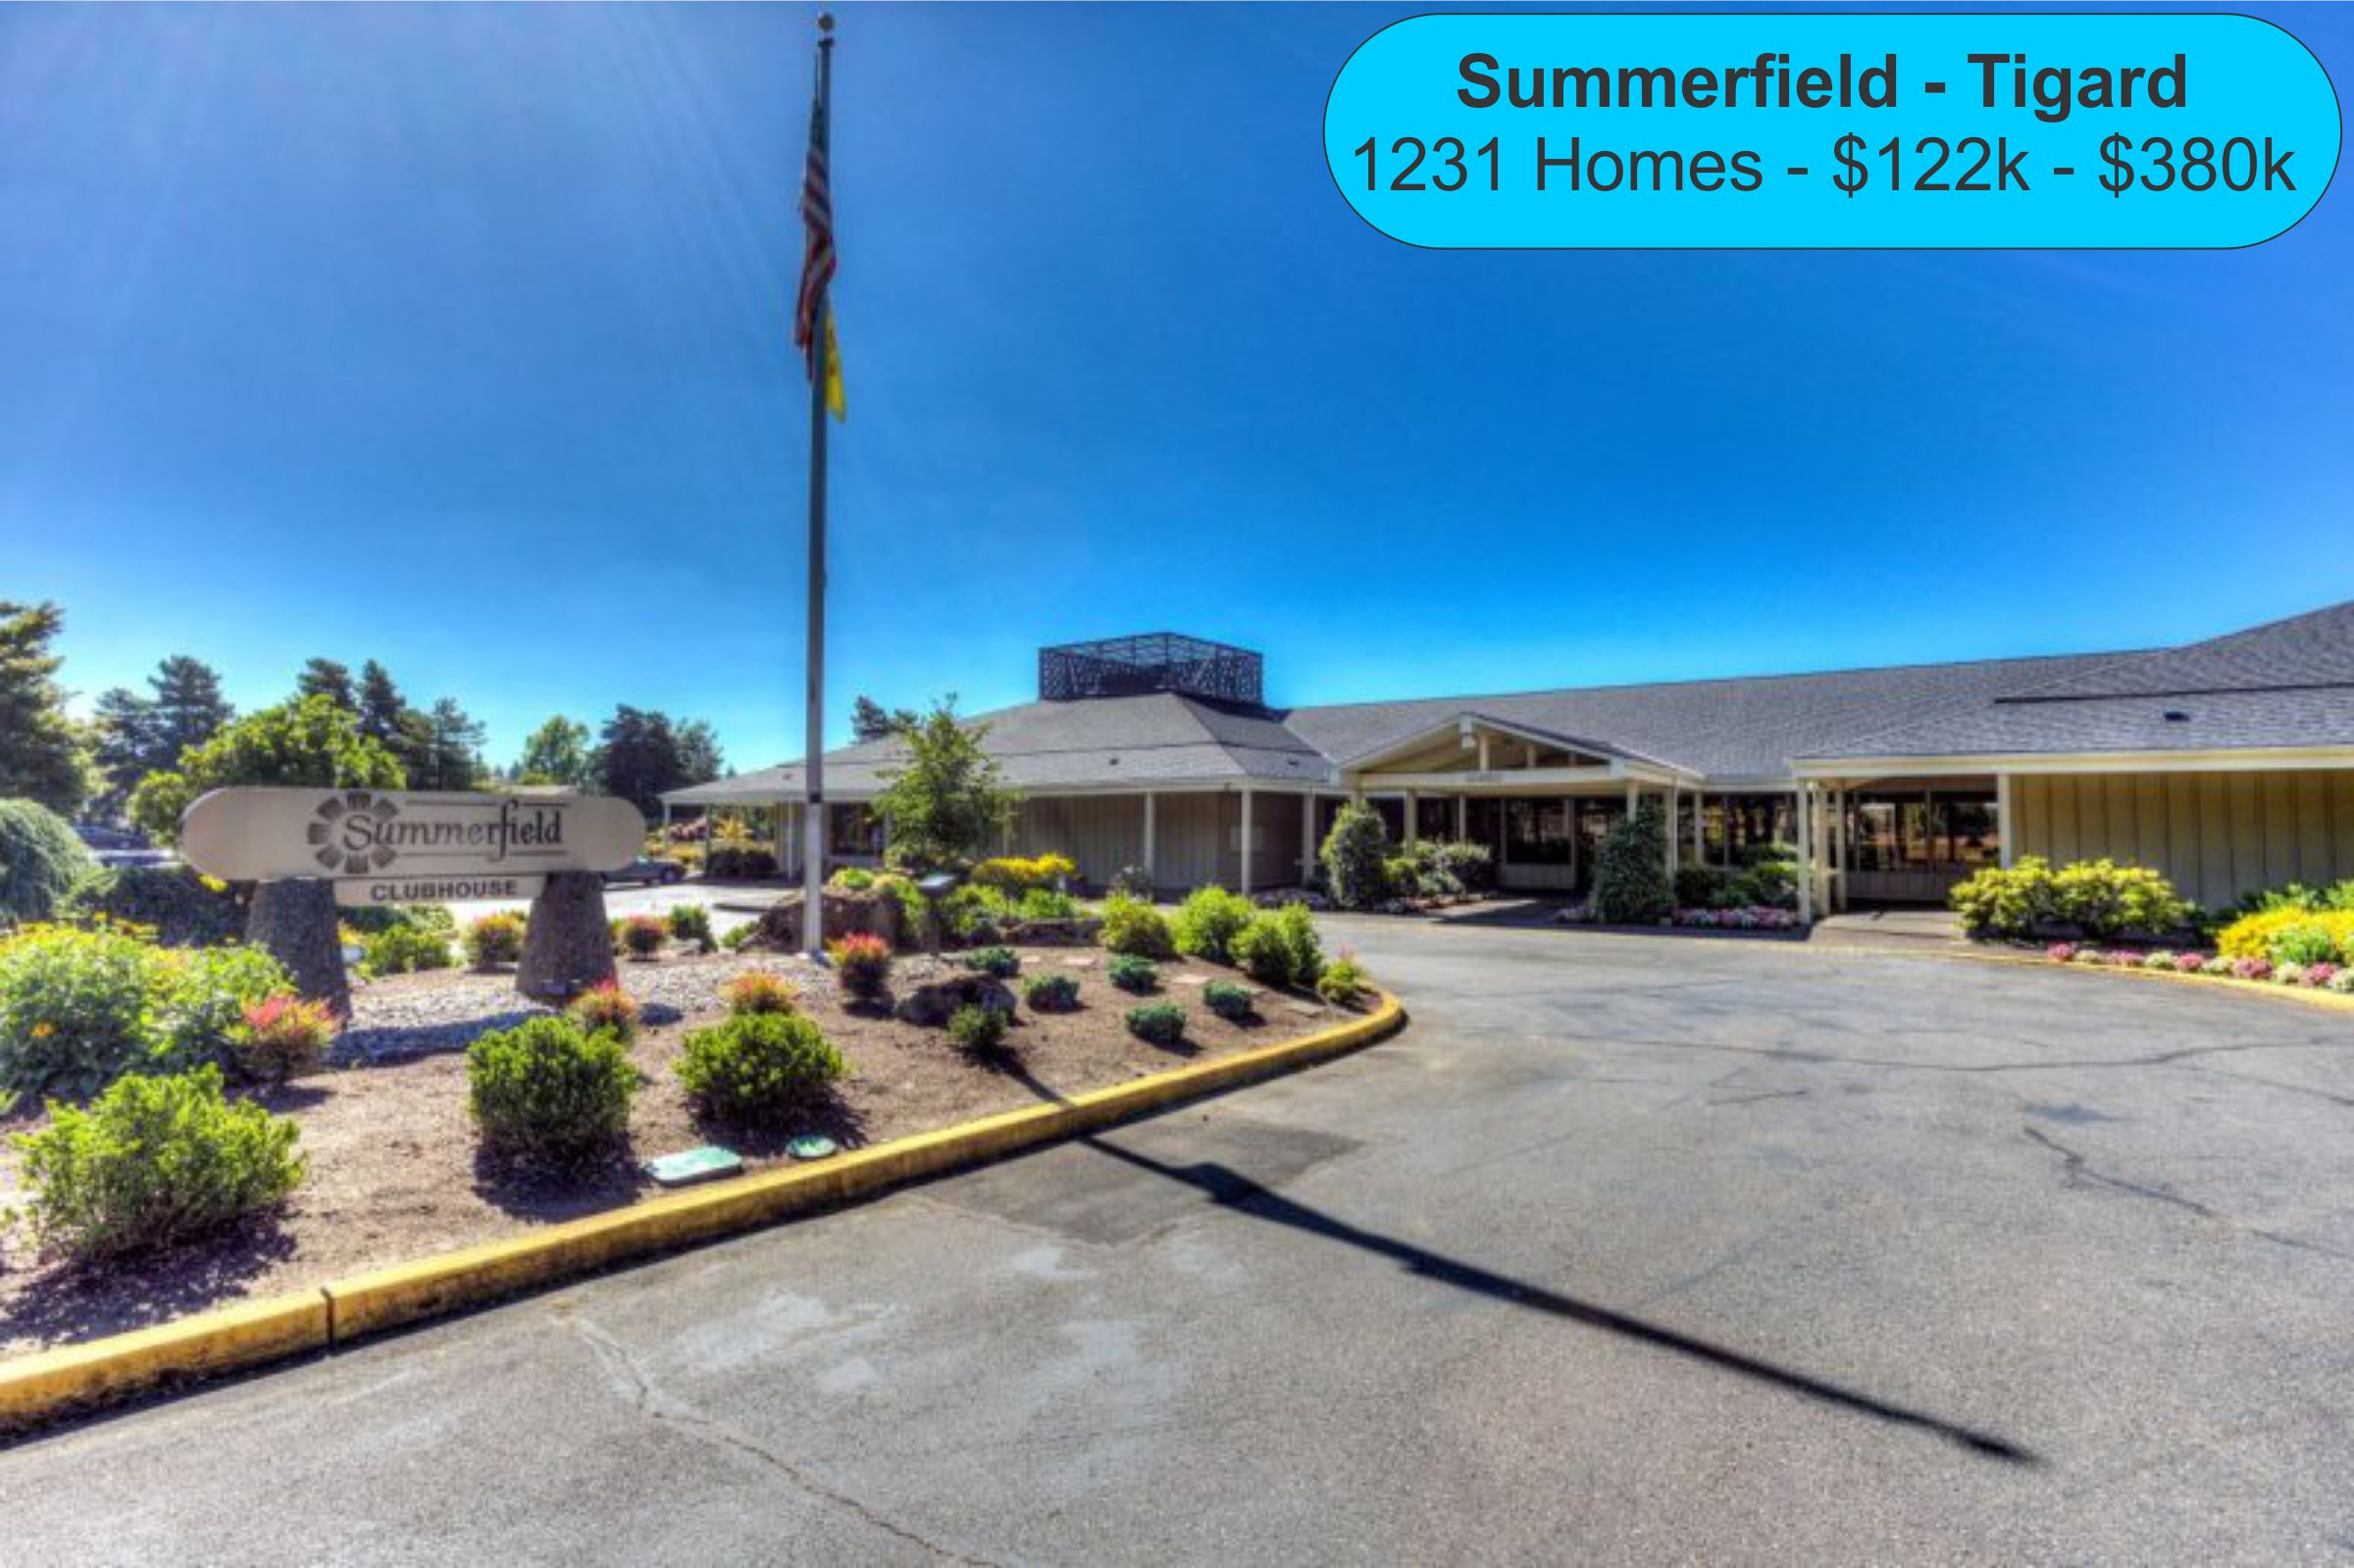 Homes for sale in Summerfield Oregon